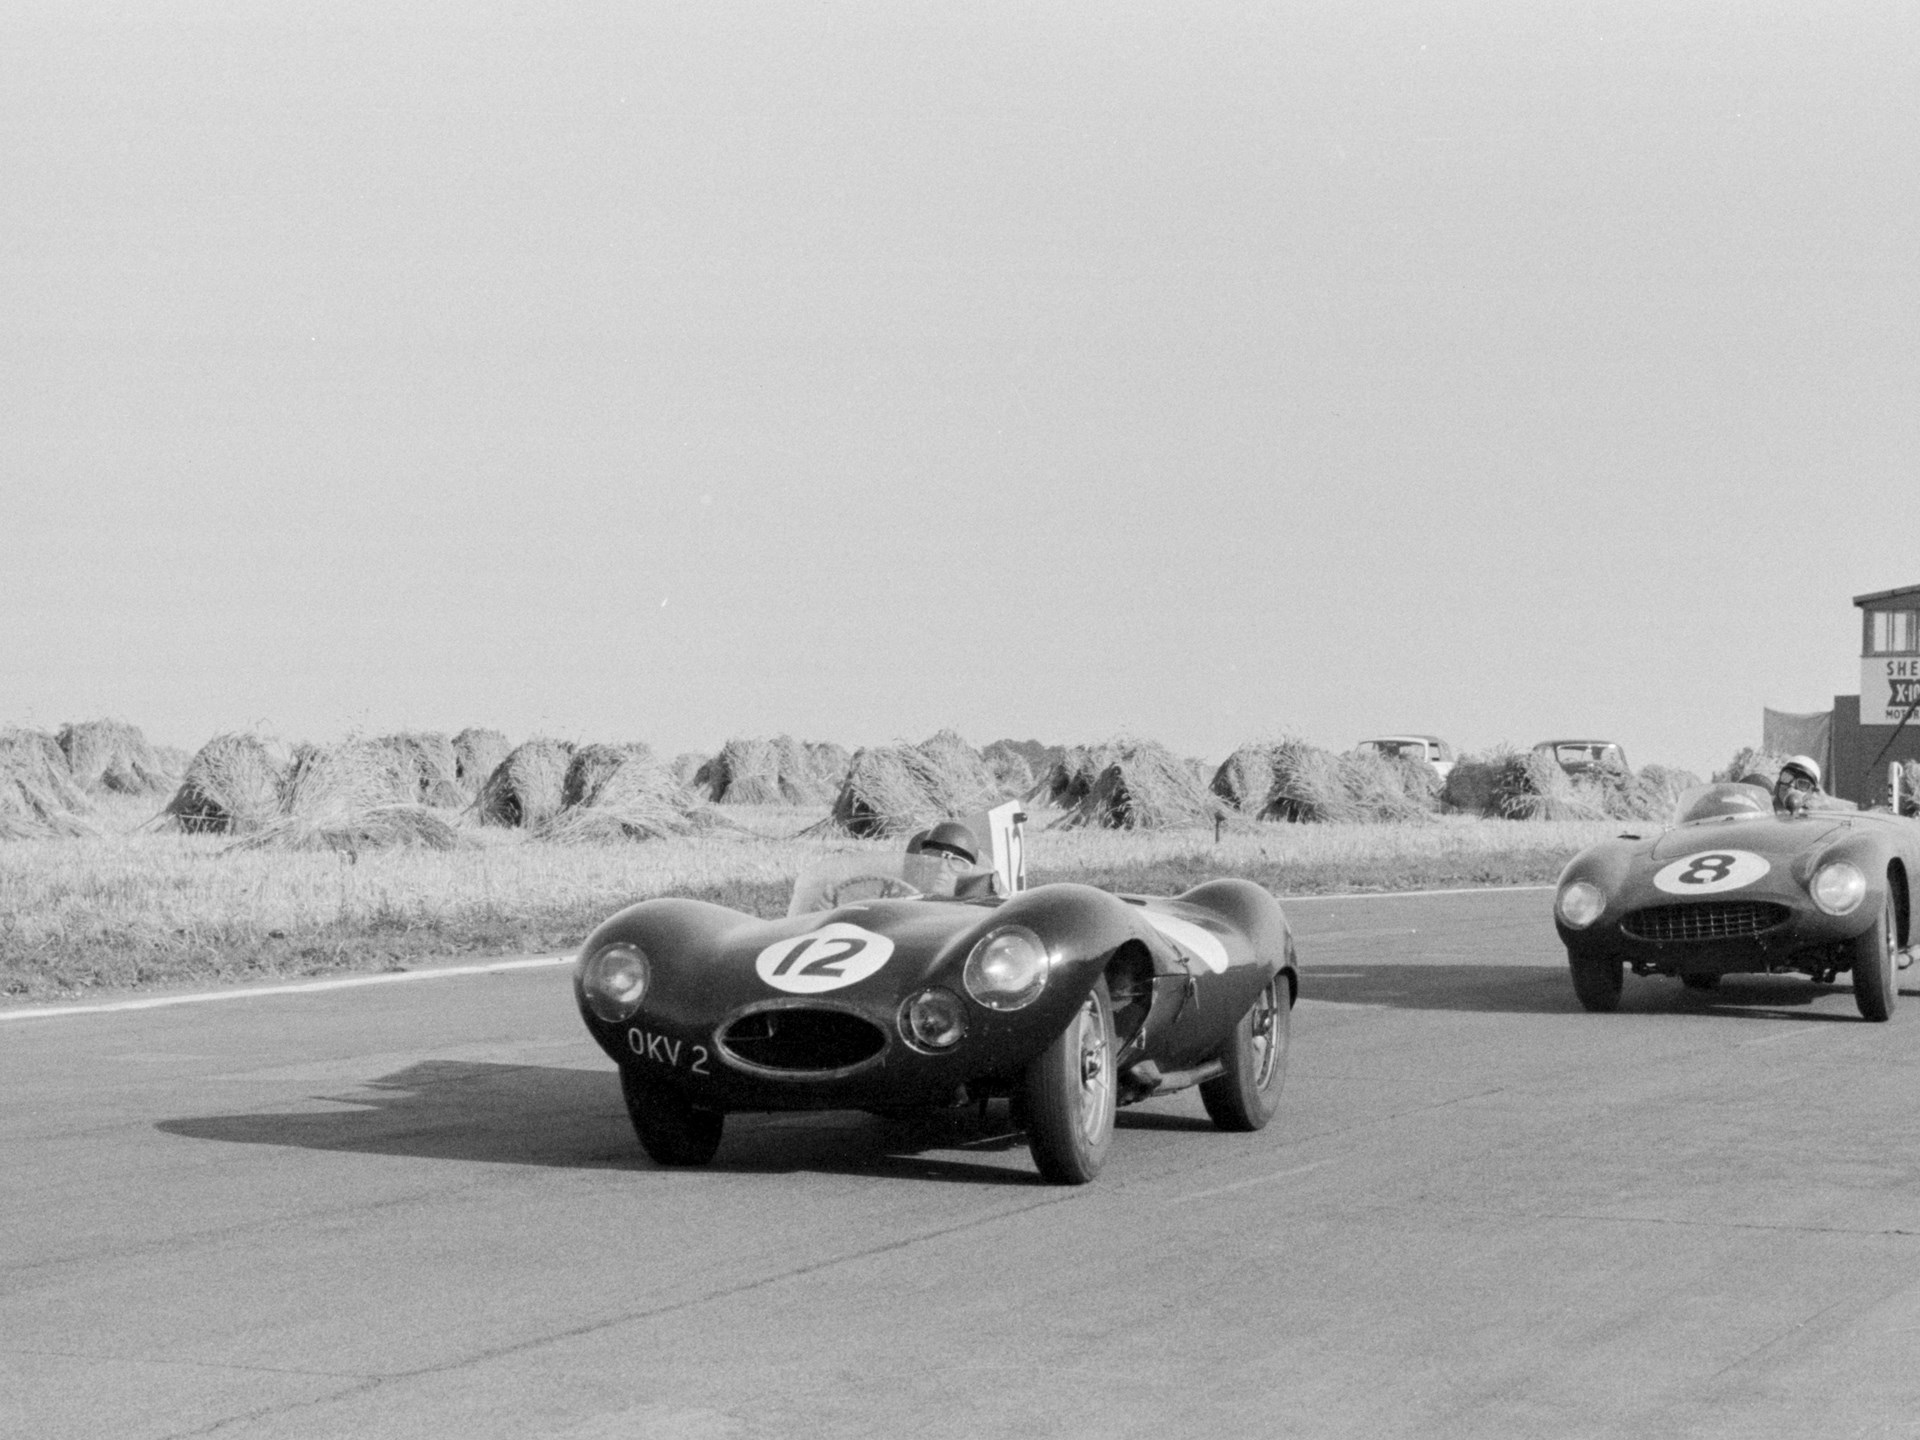 OKV2 leads a 750 Monza at the Goodwood Nine Hours in 1955.